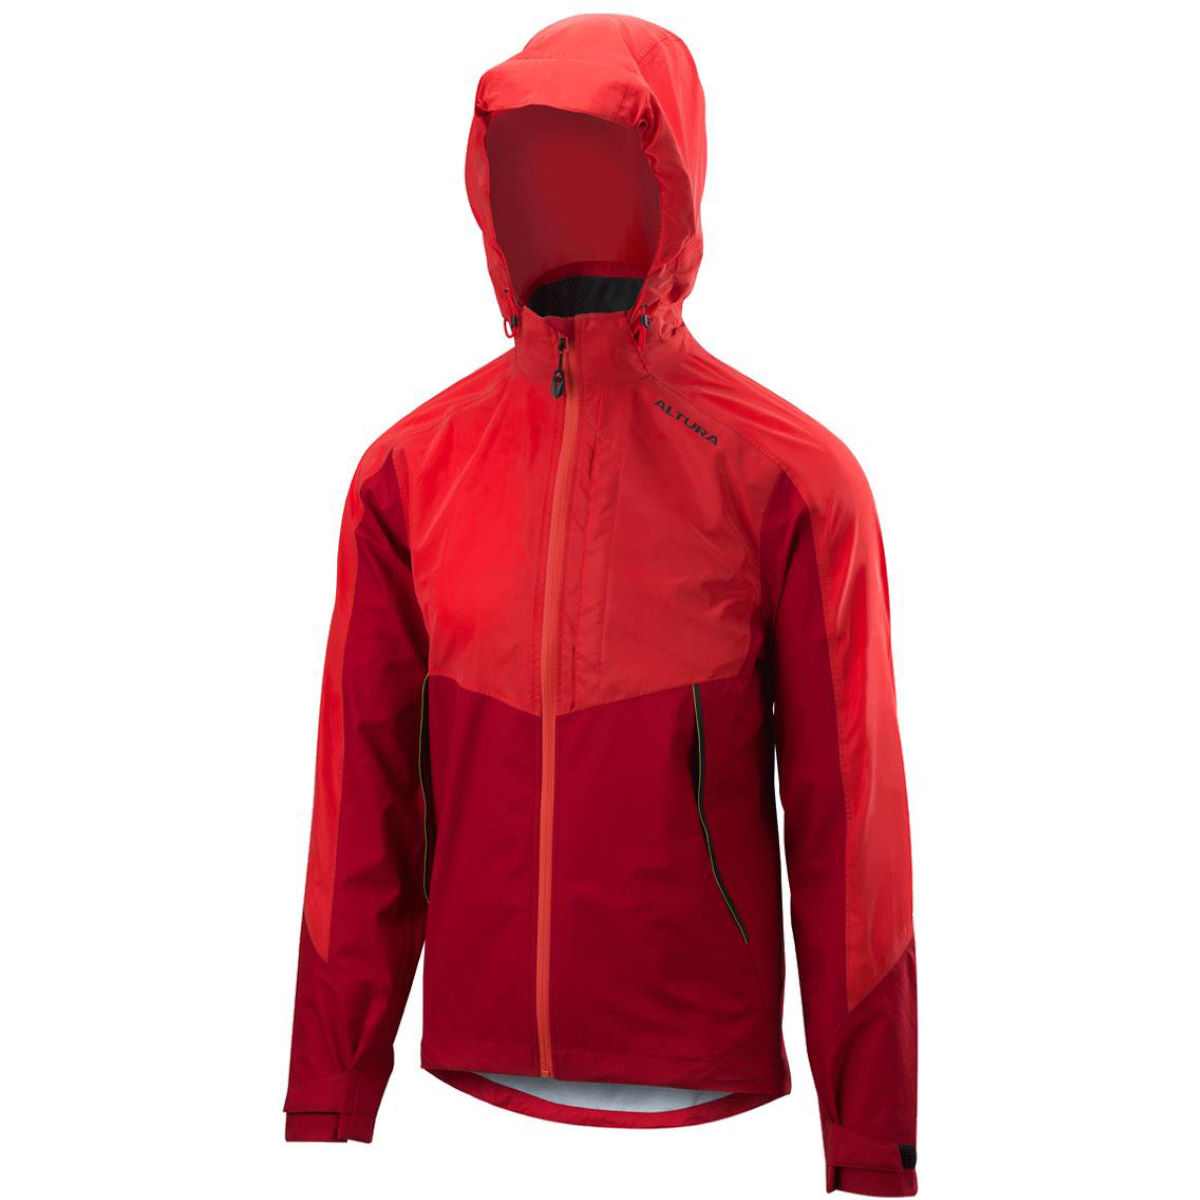 Veste Altura Nightvision Thunderstorm - XXL Red/Red Reflective